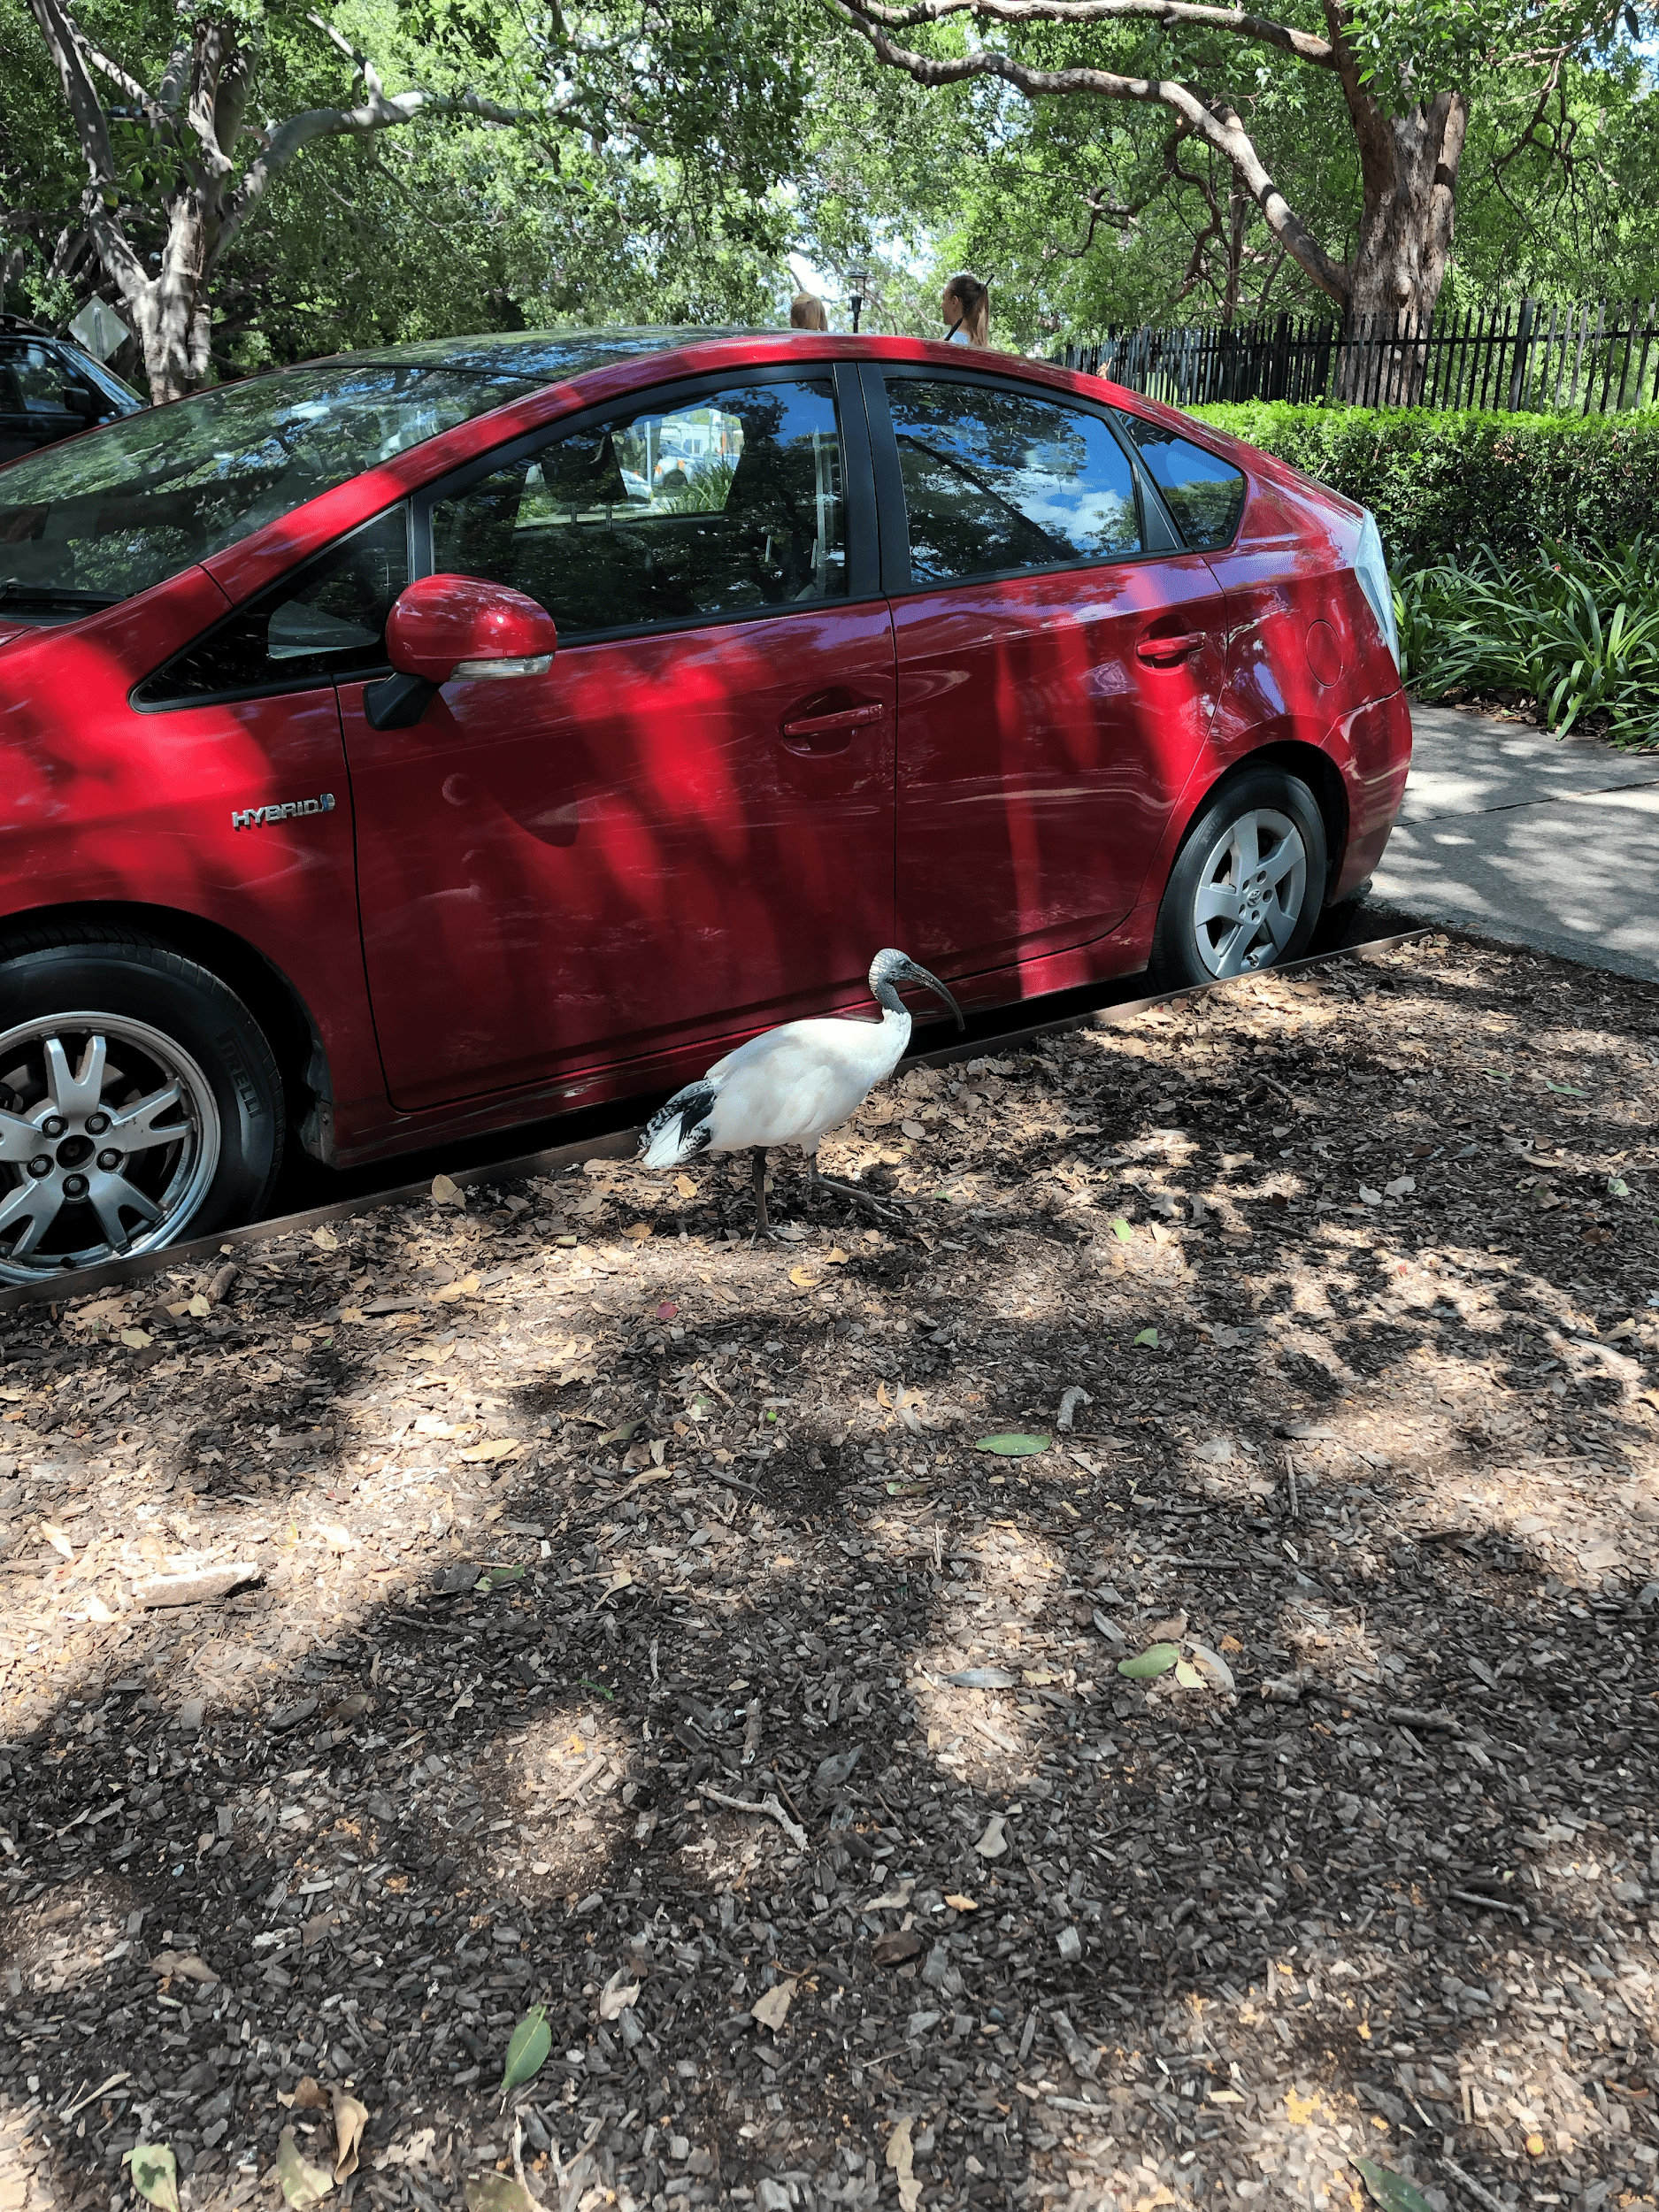 Large white Ibis bird standing in front of red car